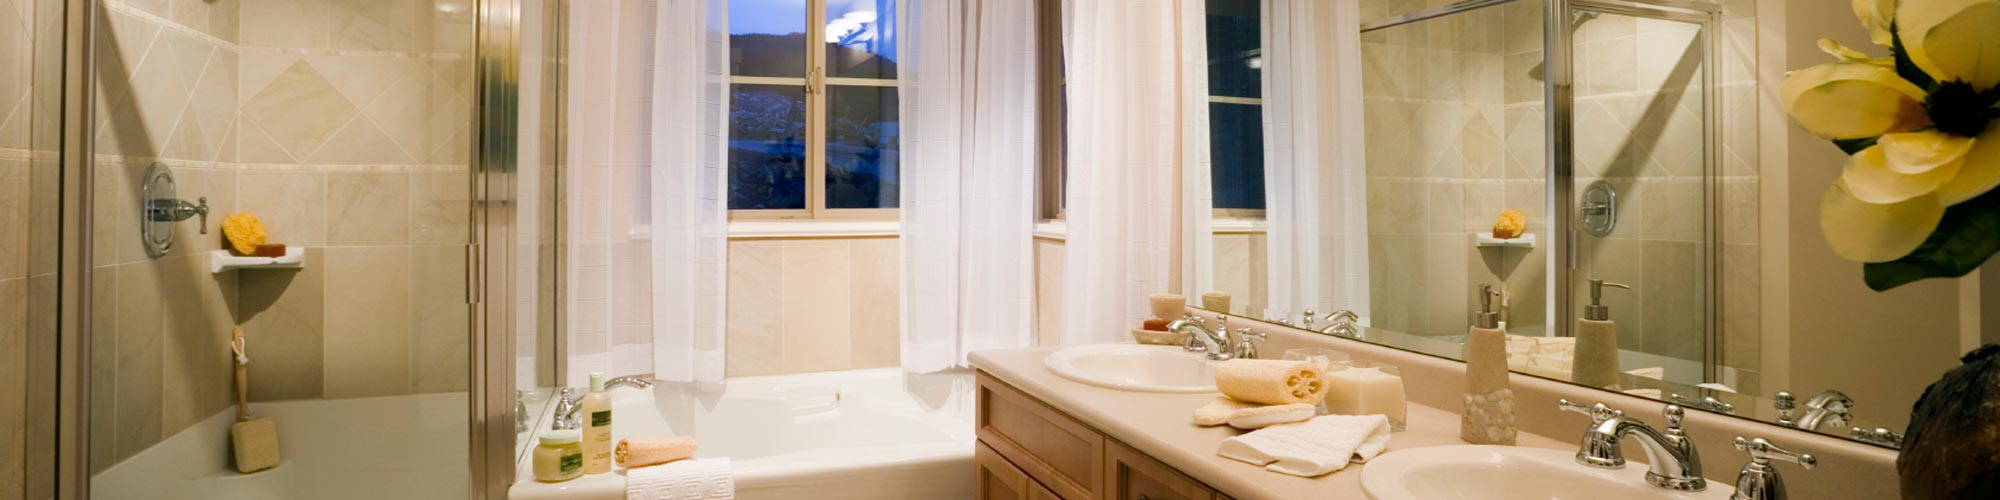 Bathroom Remodeling In Lynchburg Va : Remodeling contractor ctg green building and